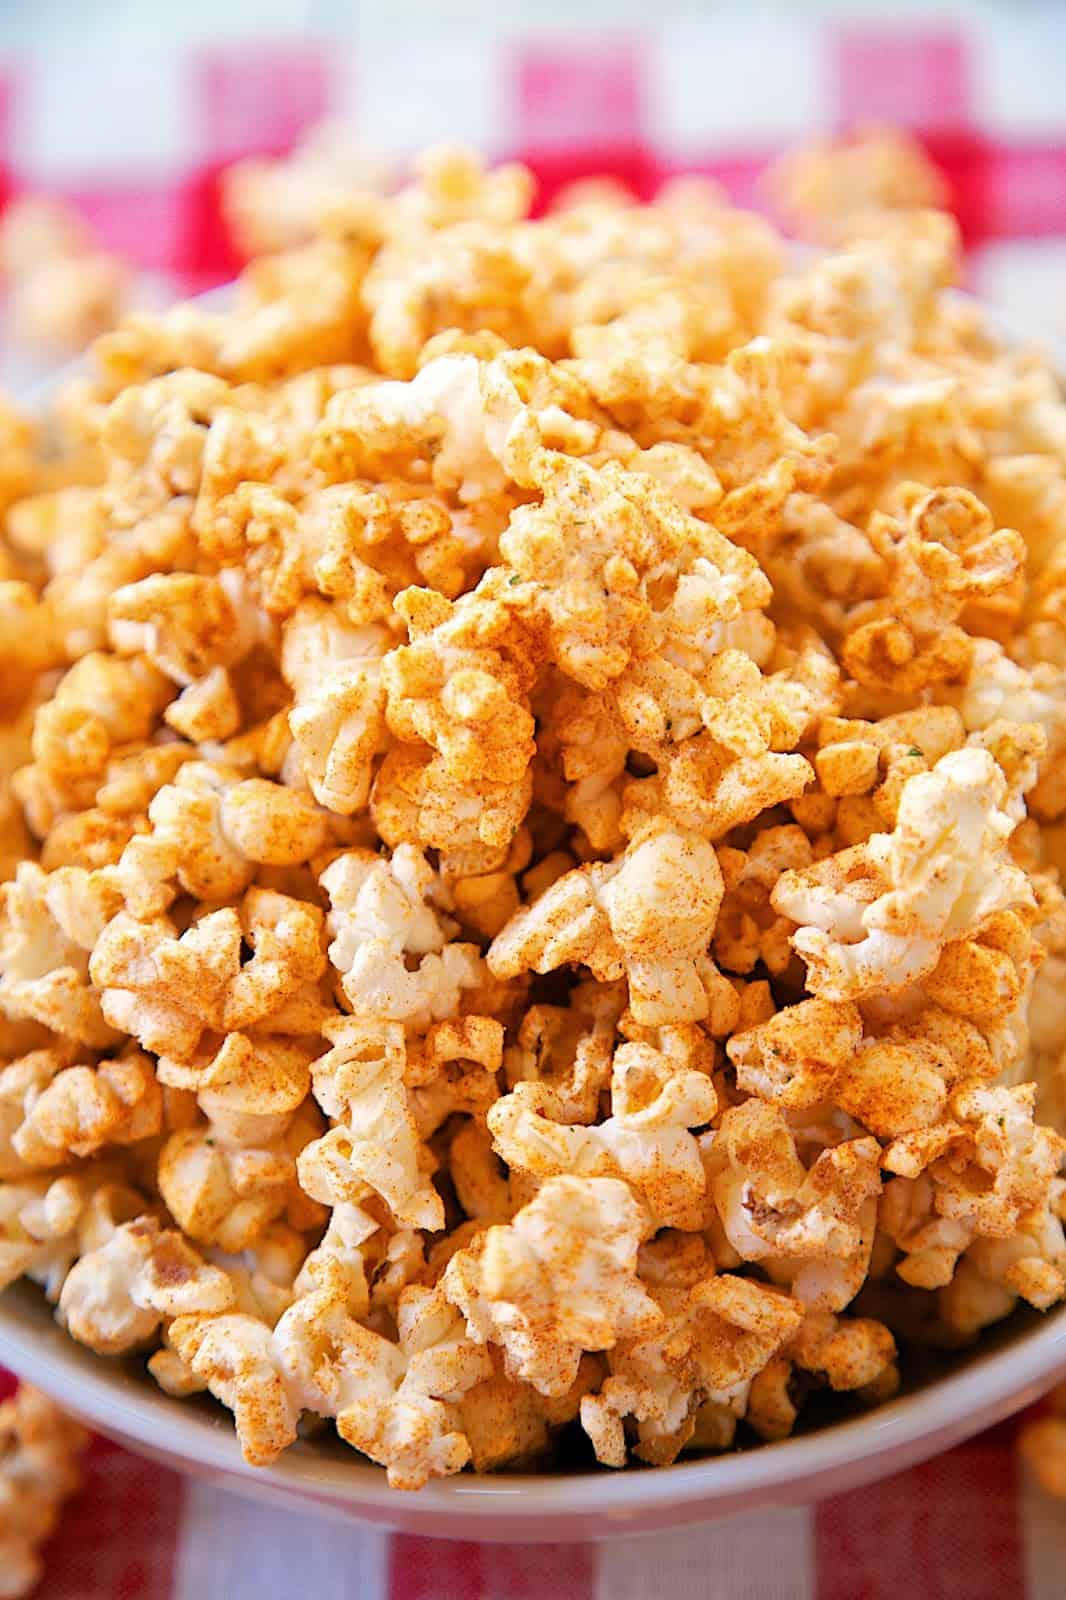 BBQ Ranch Popcorn Recipe - microwave popcorn seasoned with Ranch dressing mix, paprika and brown sugar. Great snack for your summer BBQ! Ready in 10 minutes!!